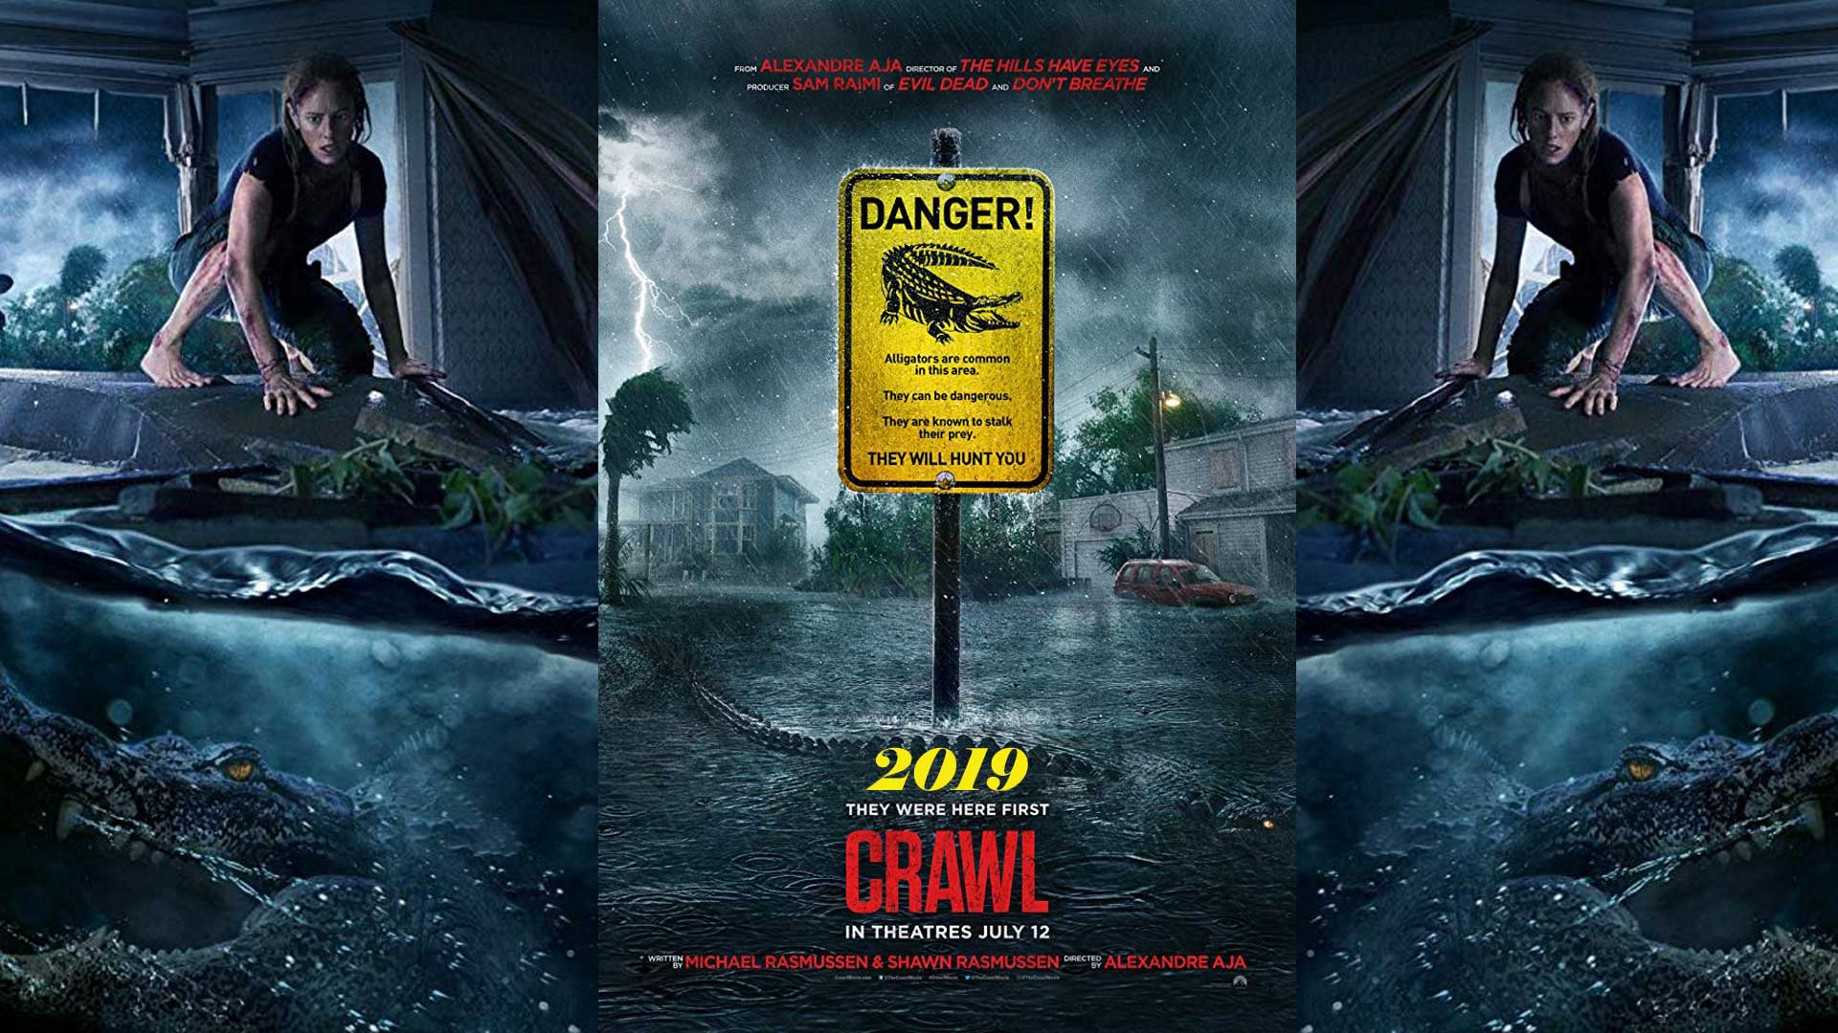 CRAWL Full Movie [2019] Online Free Download - Marry Sholles - Medium